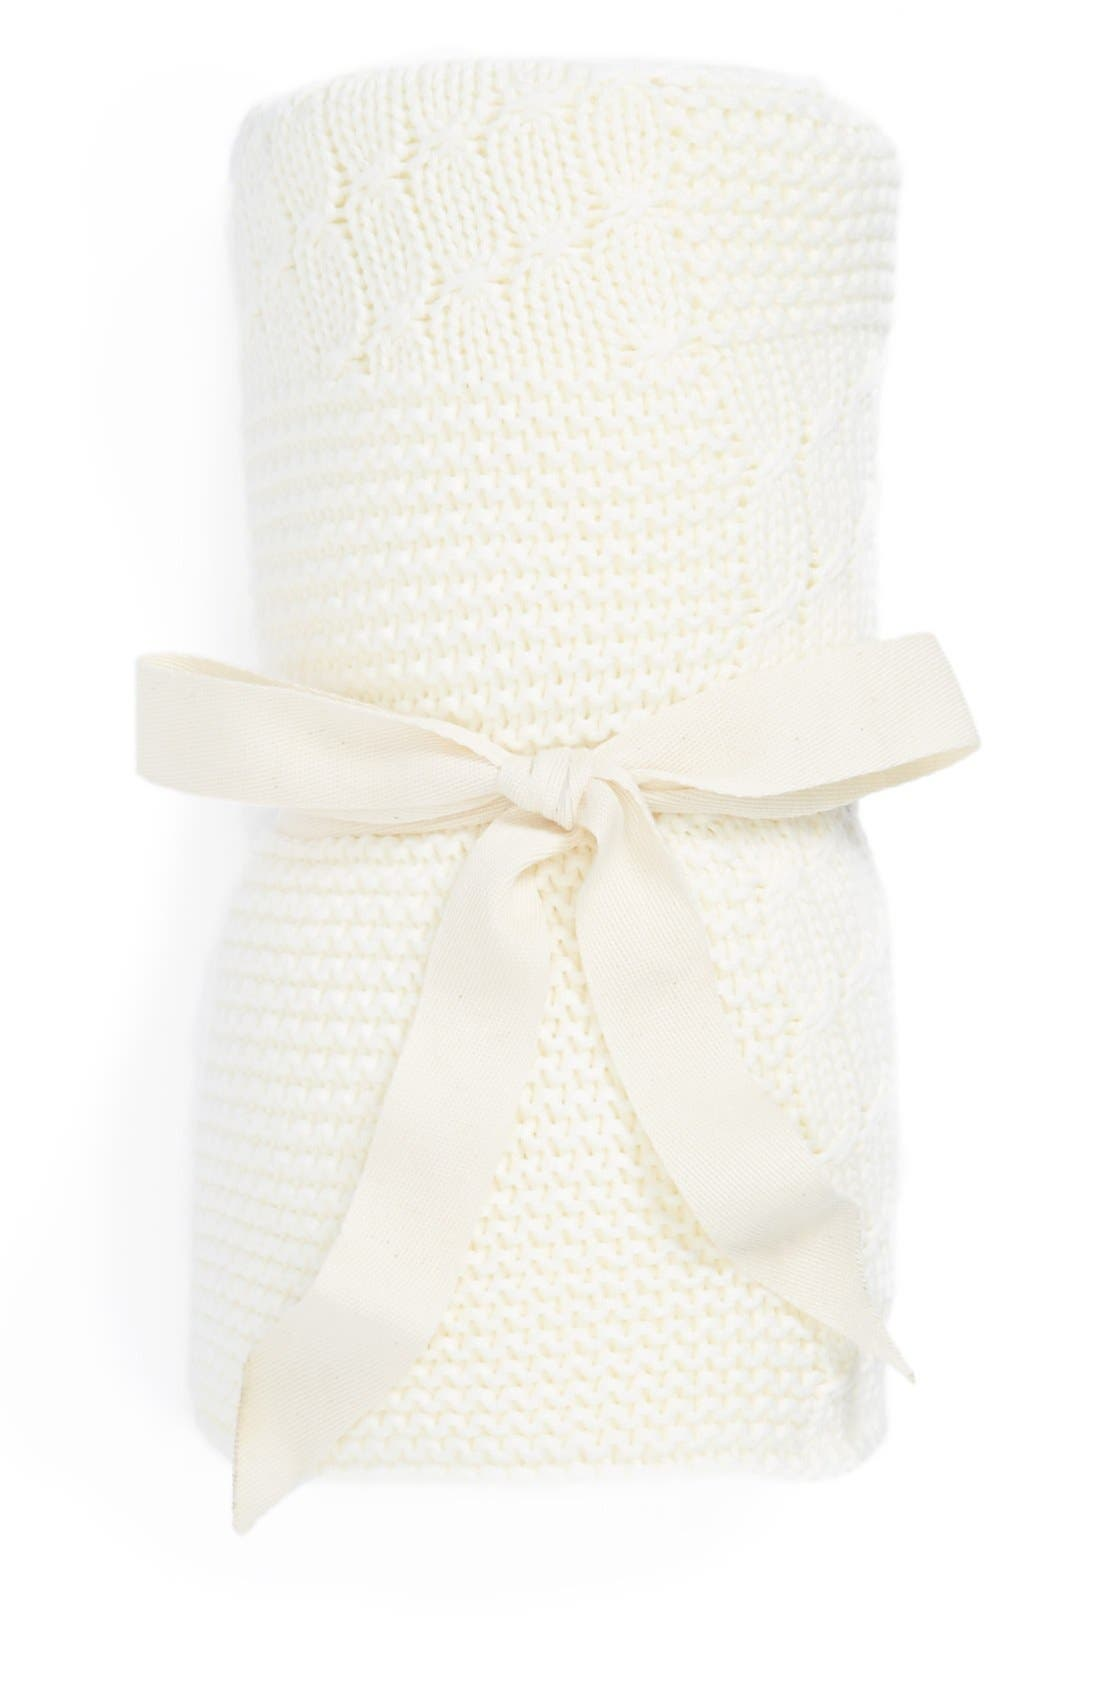 Alternate Image 1 Selected - Nordstrom Baby Patchwork Sweater Knit Blanket (Baby)